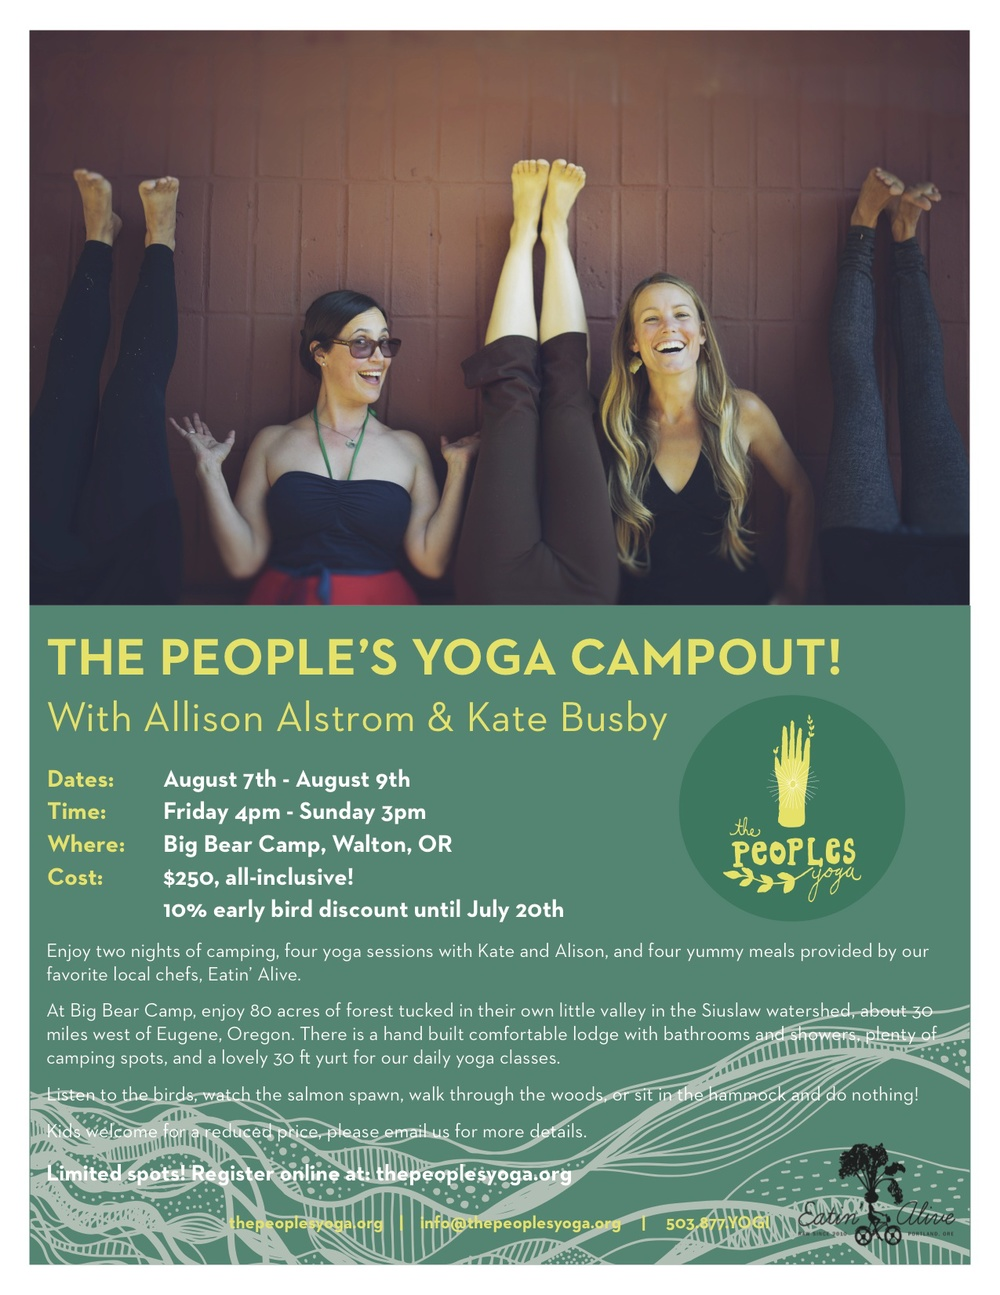 There will be 4 extended yoga sessions in our forested yurt studio, two optional morning meditations and a special campfire hangout with storytelling, music and stargazing.